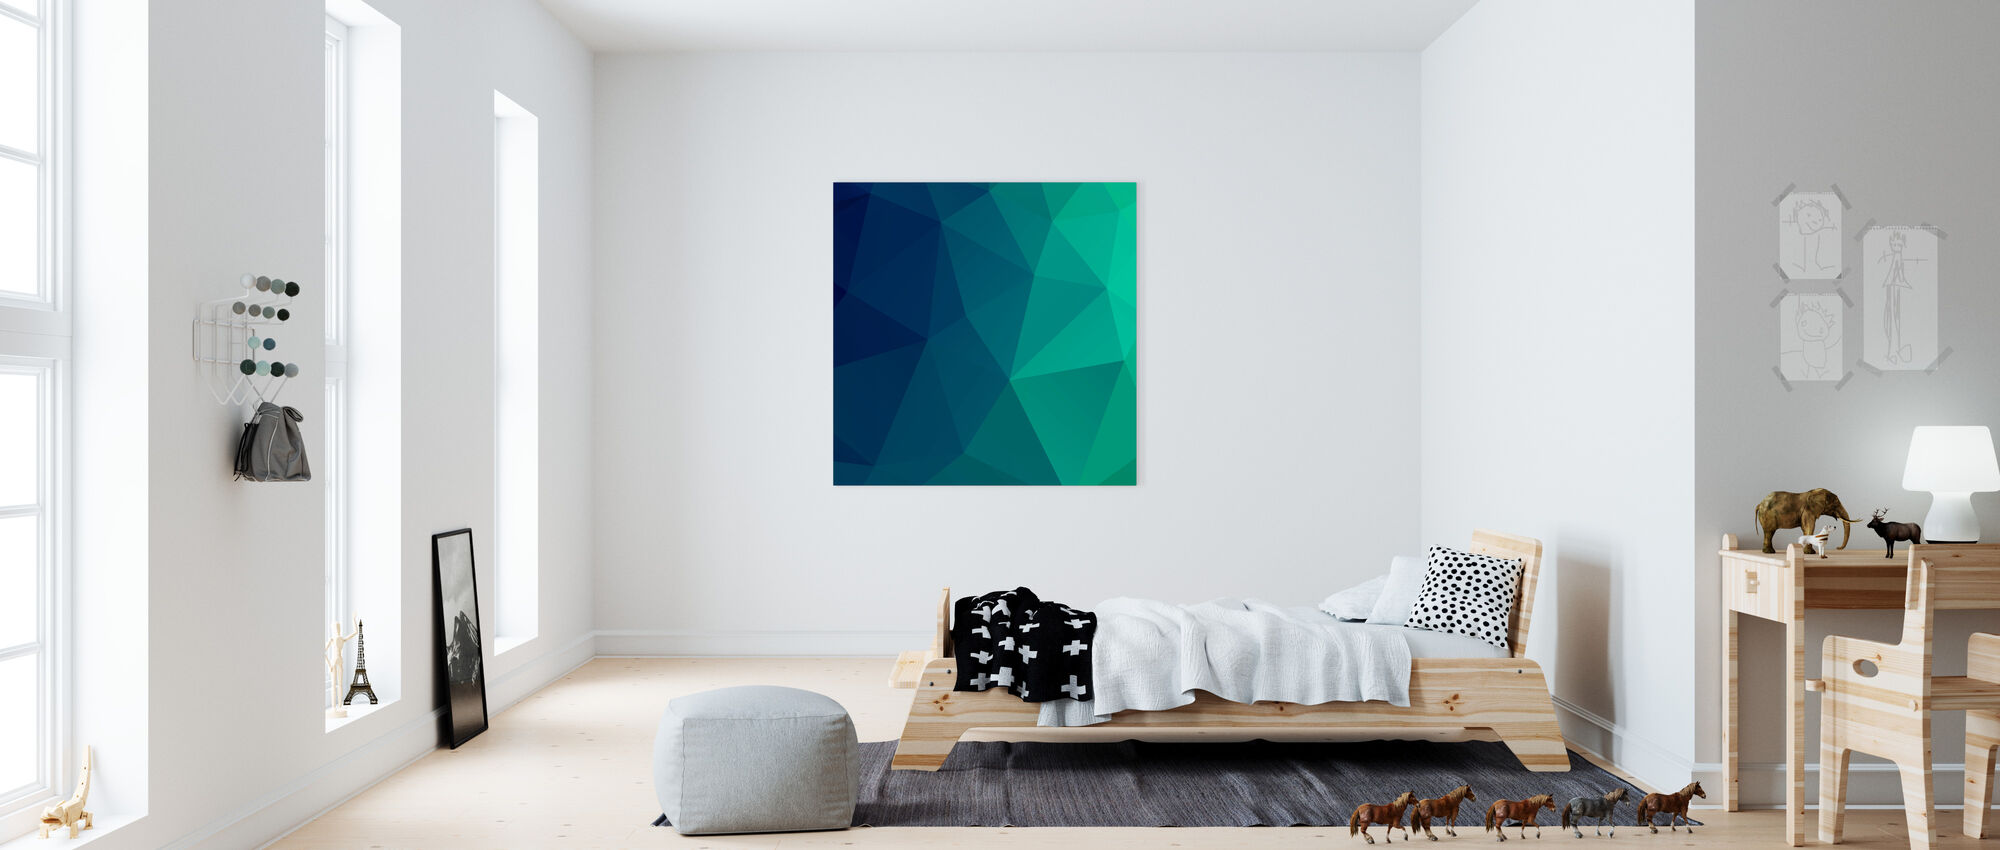 abstract triangles leinwandbild h chster qualit t photowall. Black Bedroom Furniture Sets. Home Design Ideas